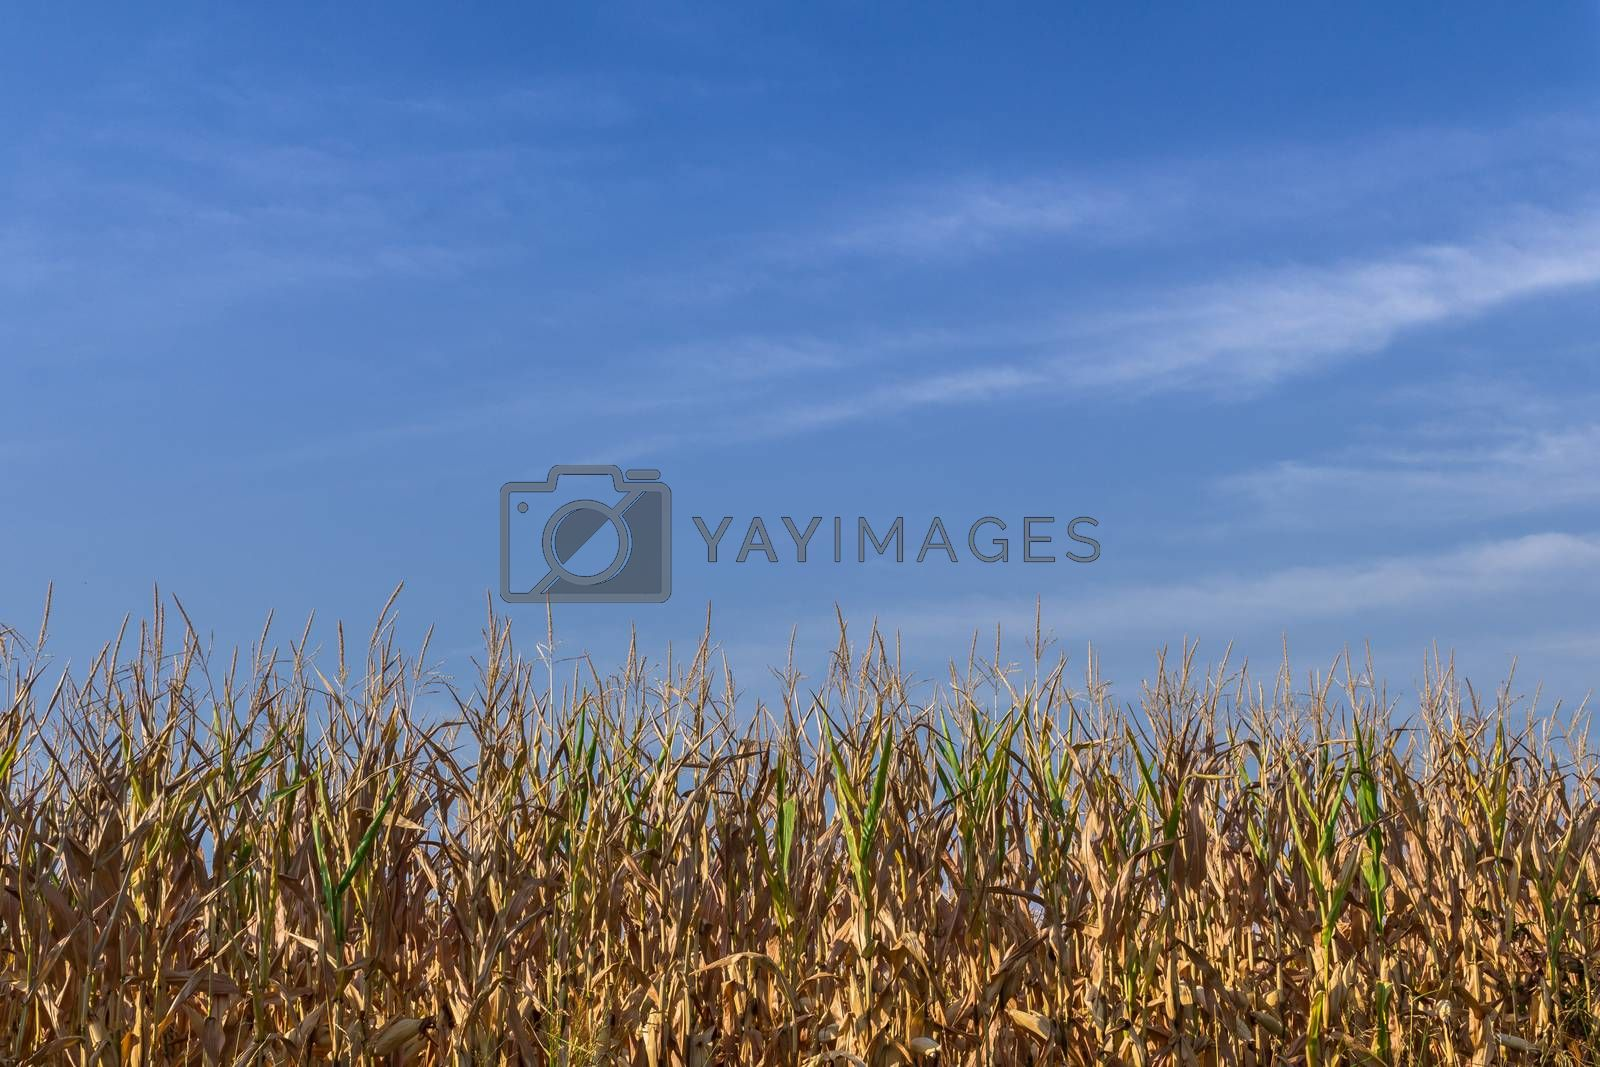 Horizontal shot of a wheat field with blue sky in the background.